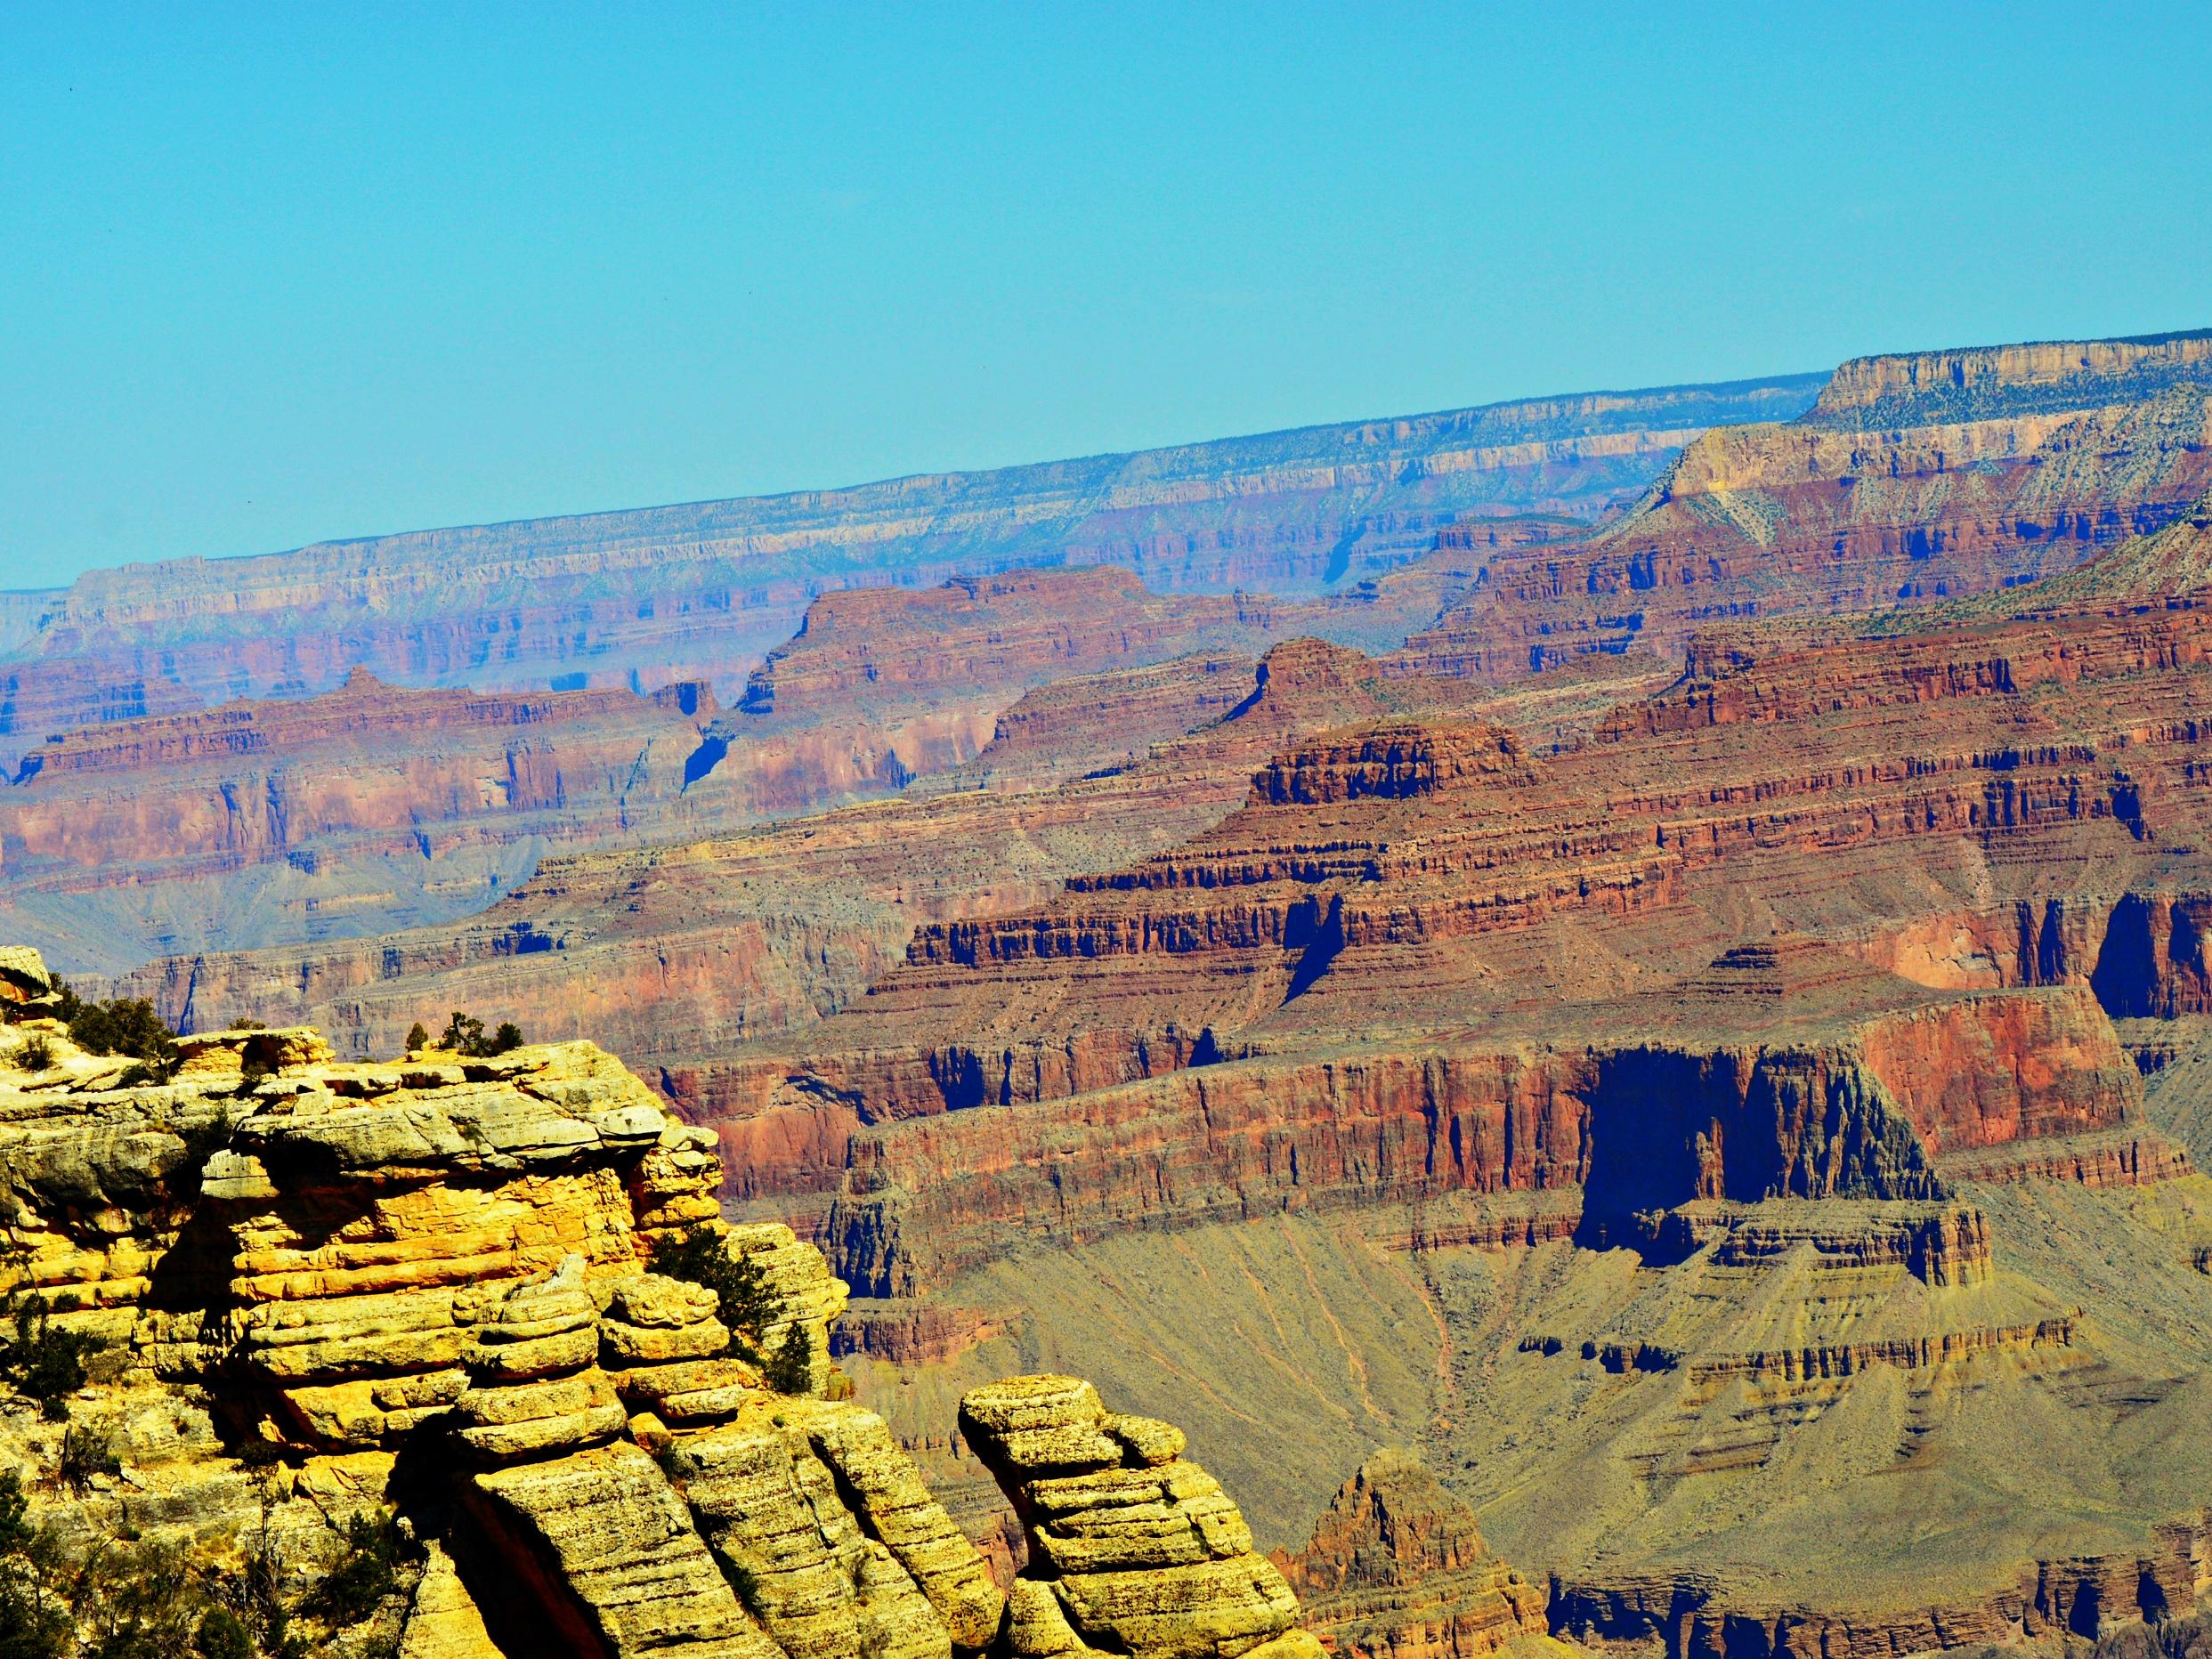 denver helicopter tours with Sf To Death Valley Las Vegas Grand Canyon 4 Day Tour 552 404 on My 2011 Grammy Predictions in addition Best Helicopter Tours In Seattle likewise Nyc Excursions together with akdogtour additionally 3.